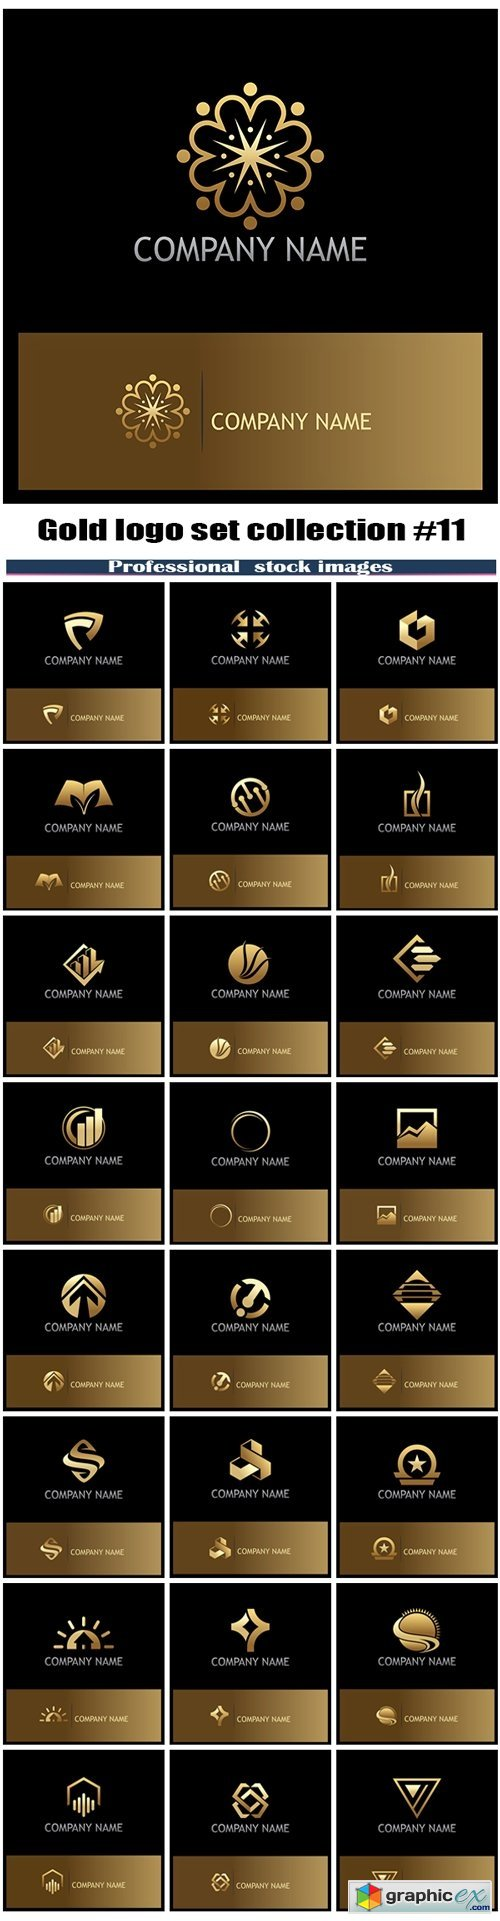 Gold logo set collection #11